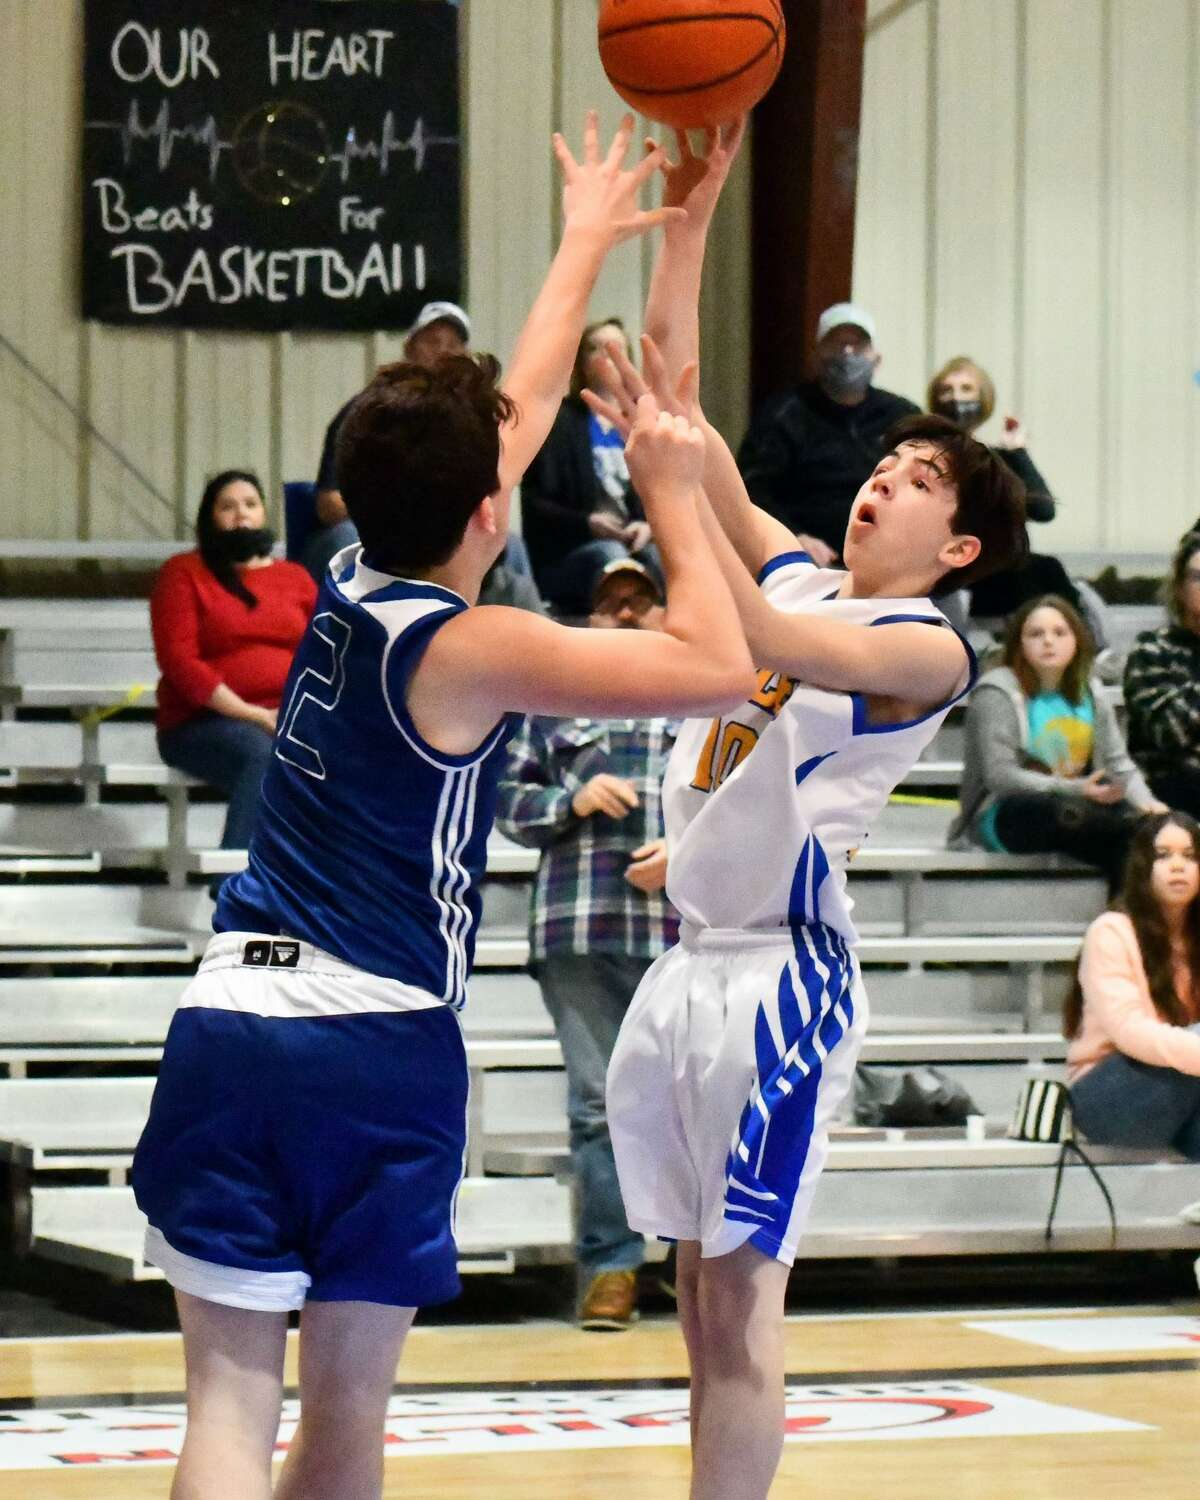 Plainview Christian Academy basketball teams split a pair of games against Wichita Falls Christian on Saturday afternoon. The Lady Eagles won 66-34 and the Eagles fell 79-34.